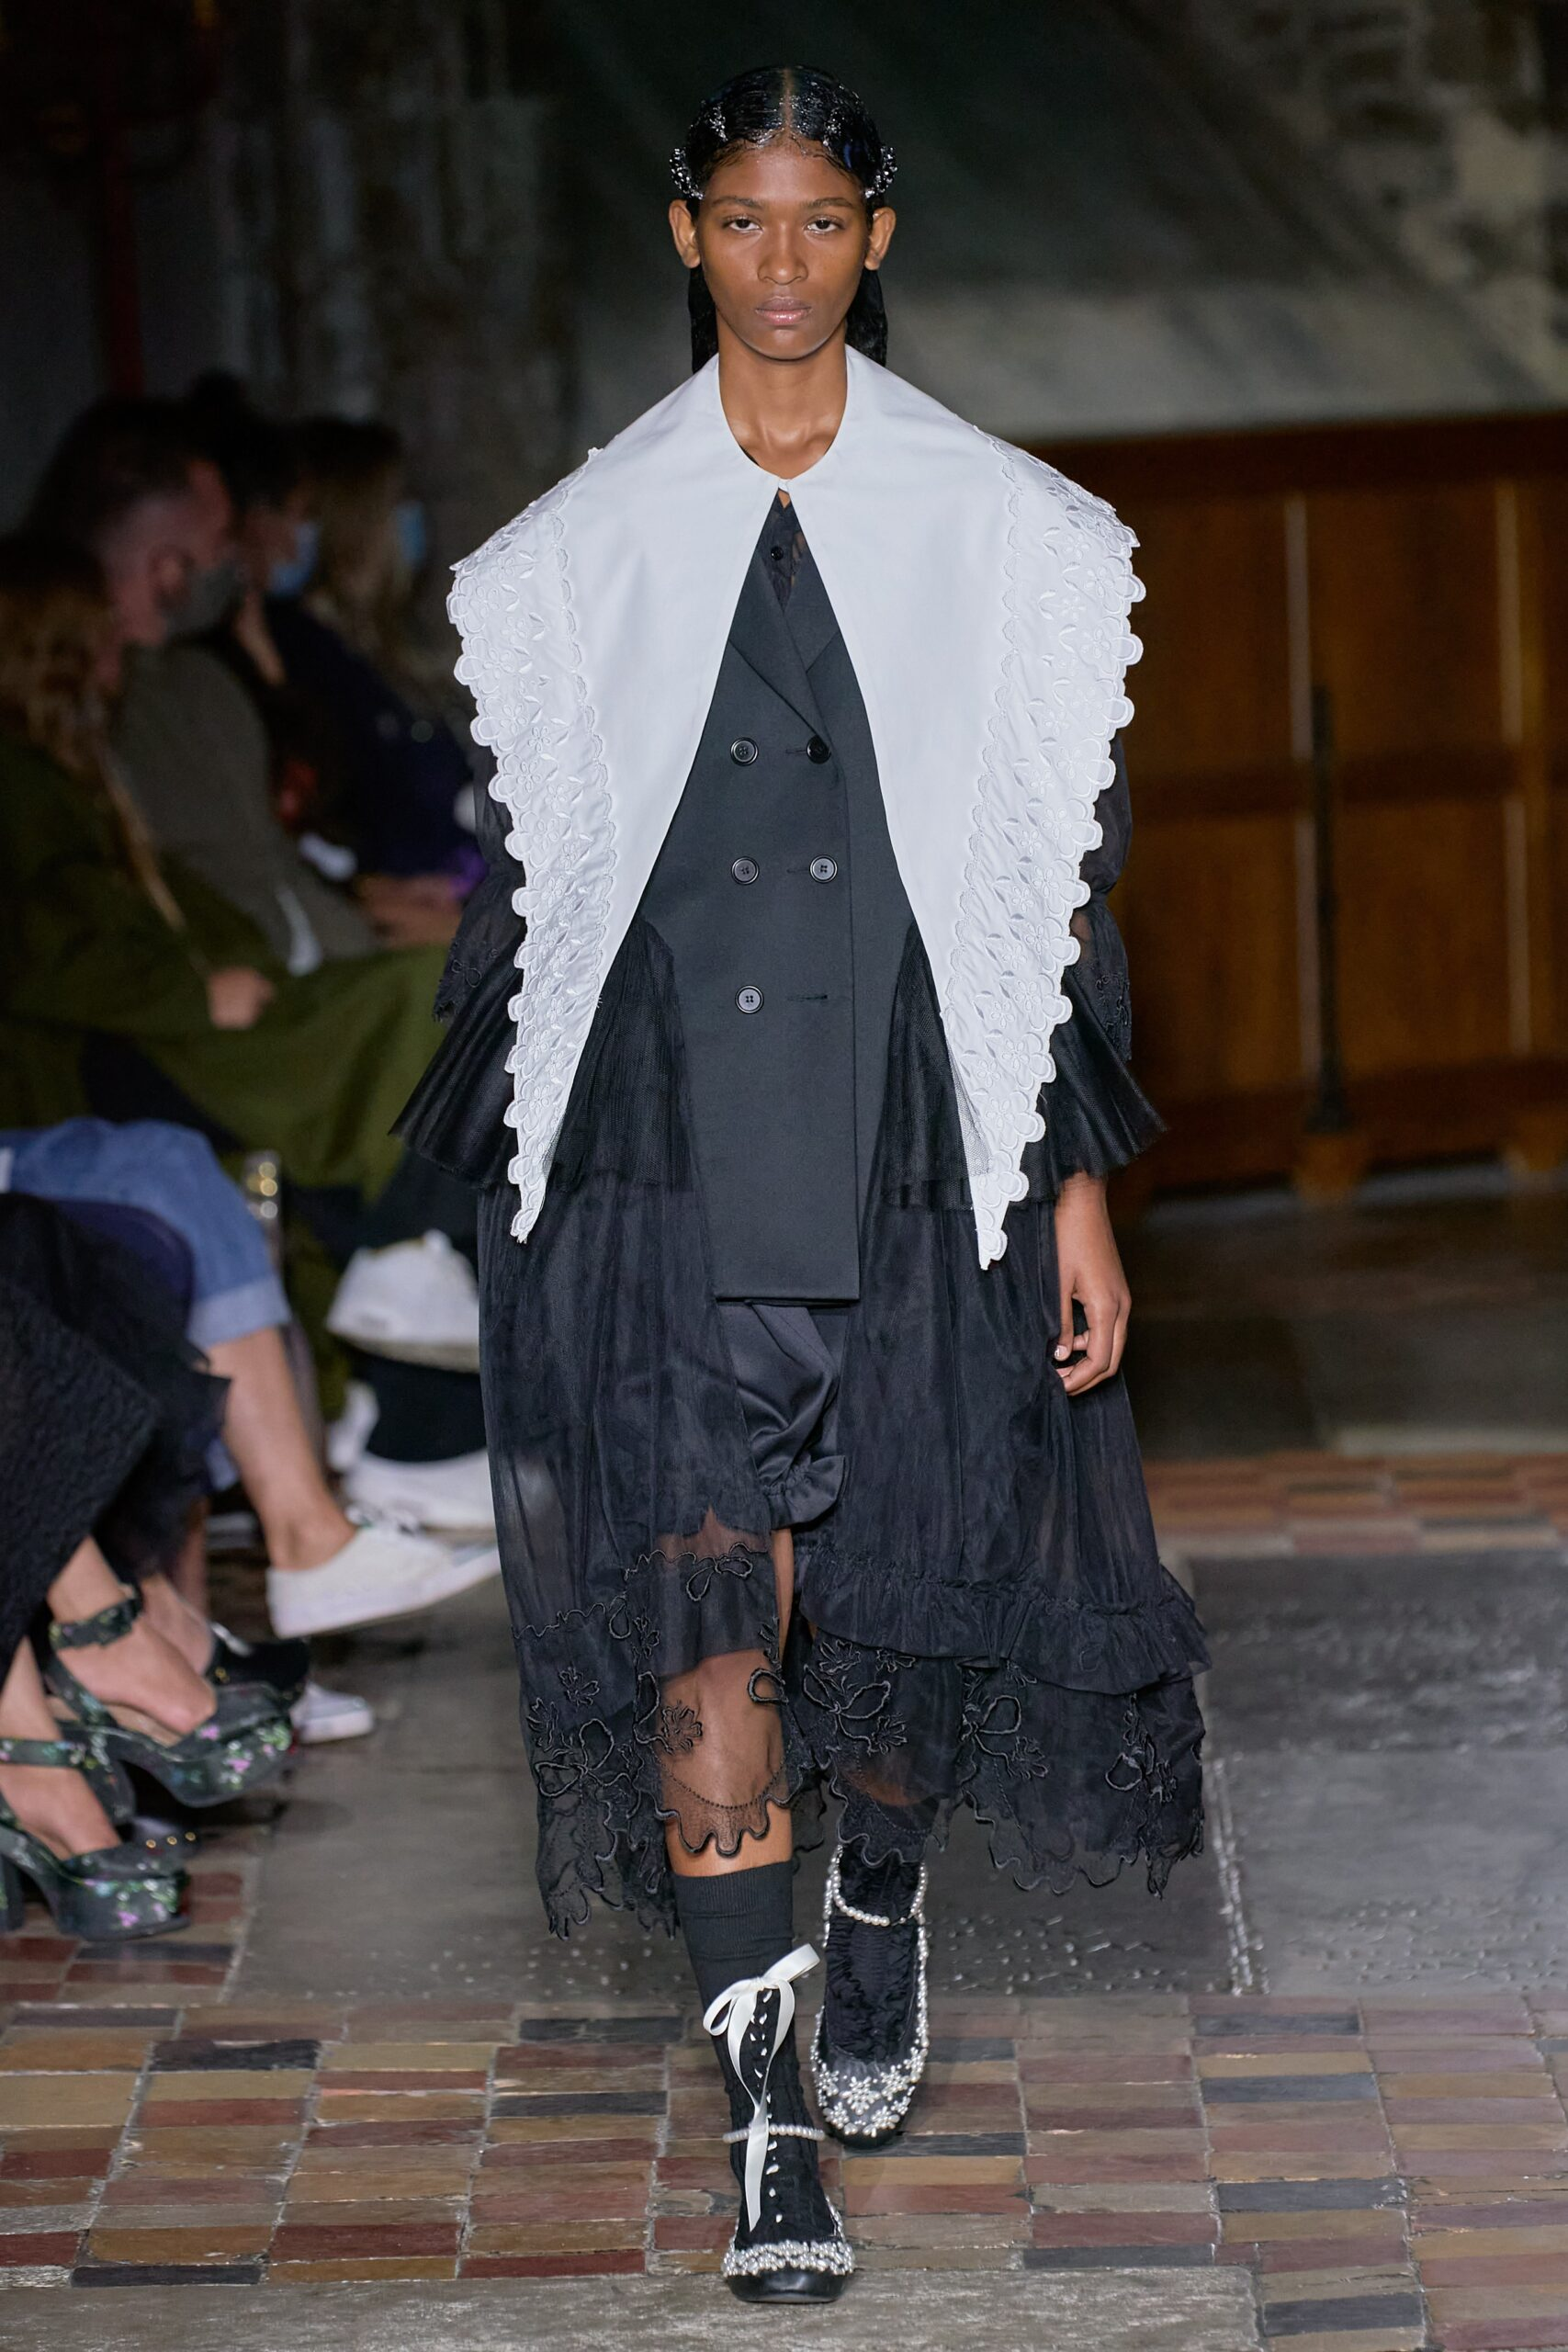 London Fashion Week Trendcast: Texture, Size, and Movement